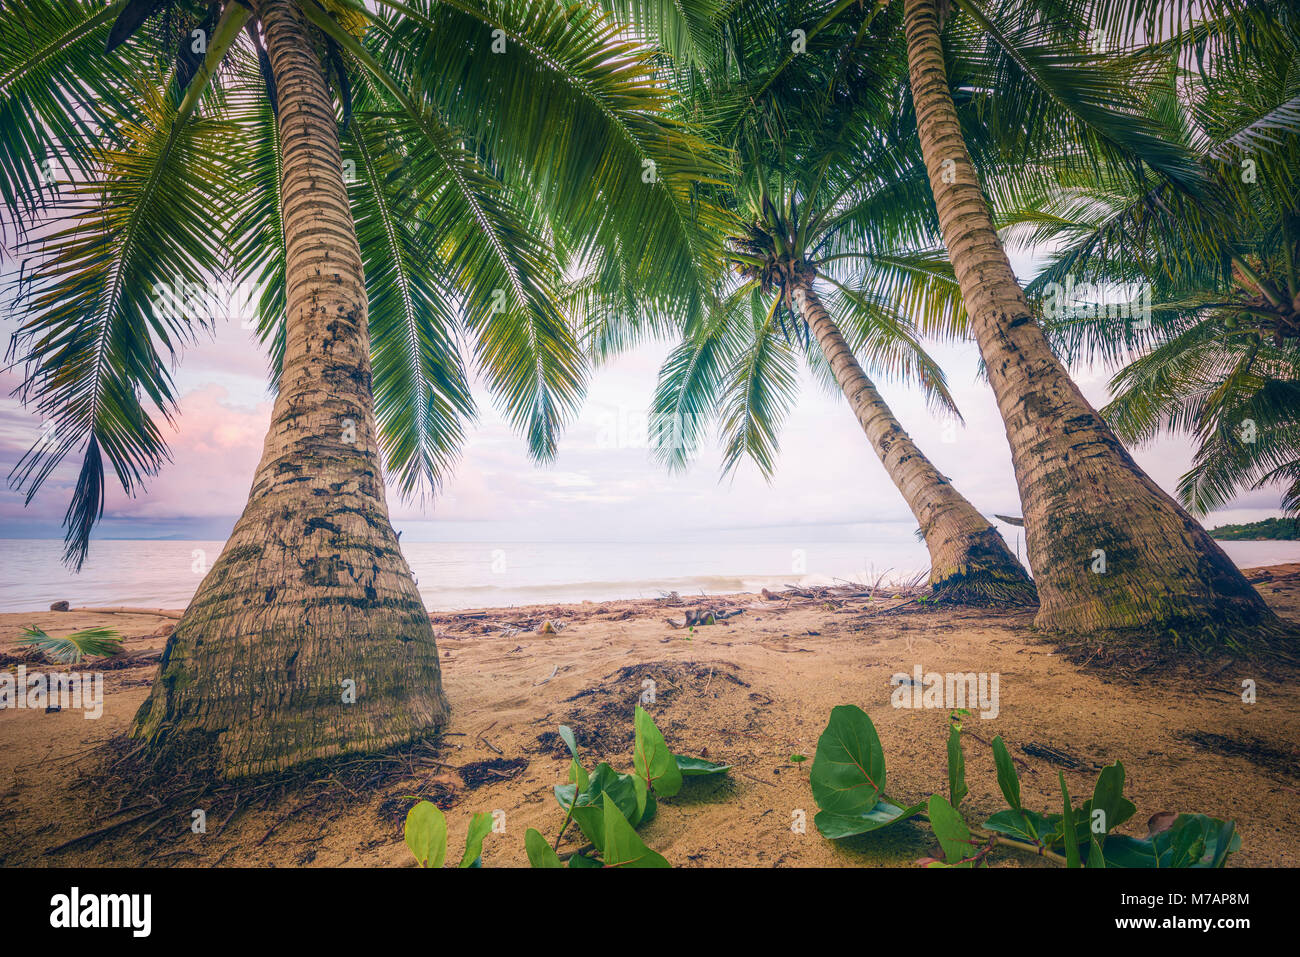 Beach scene in retro style on the Caribbean island Puerto Rico - Stock Image